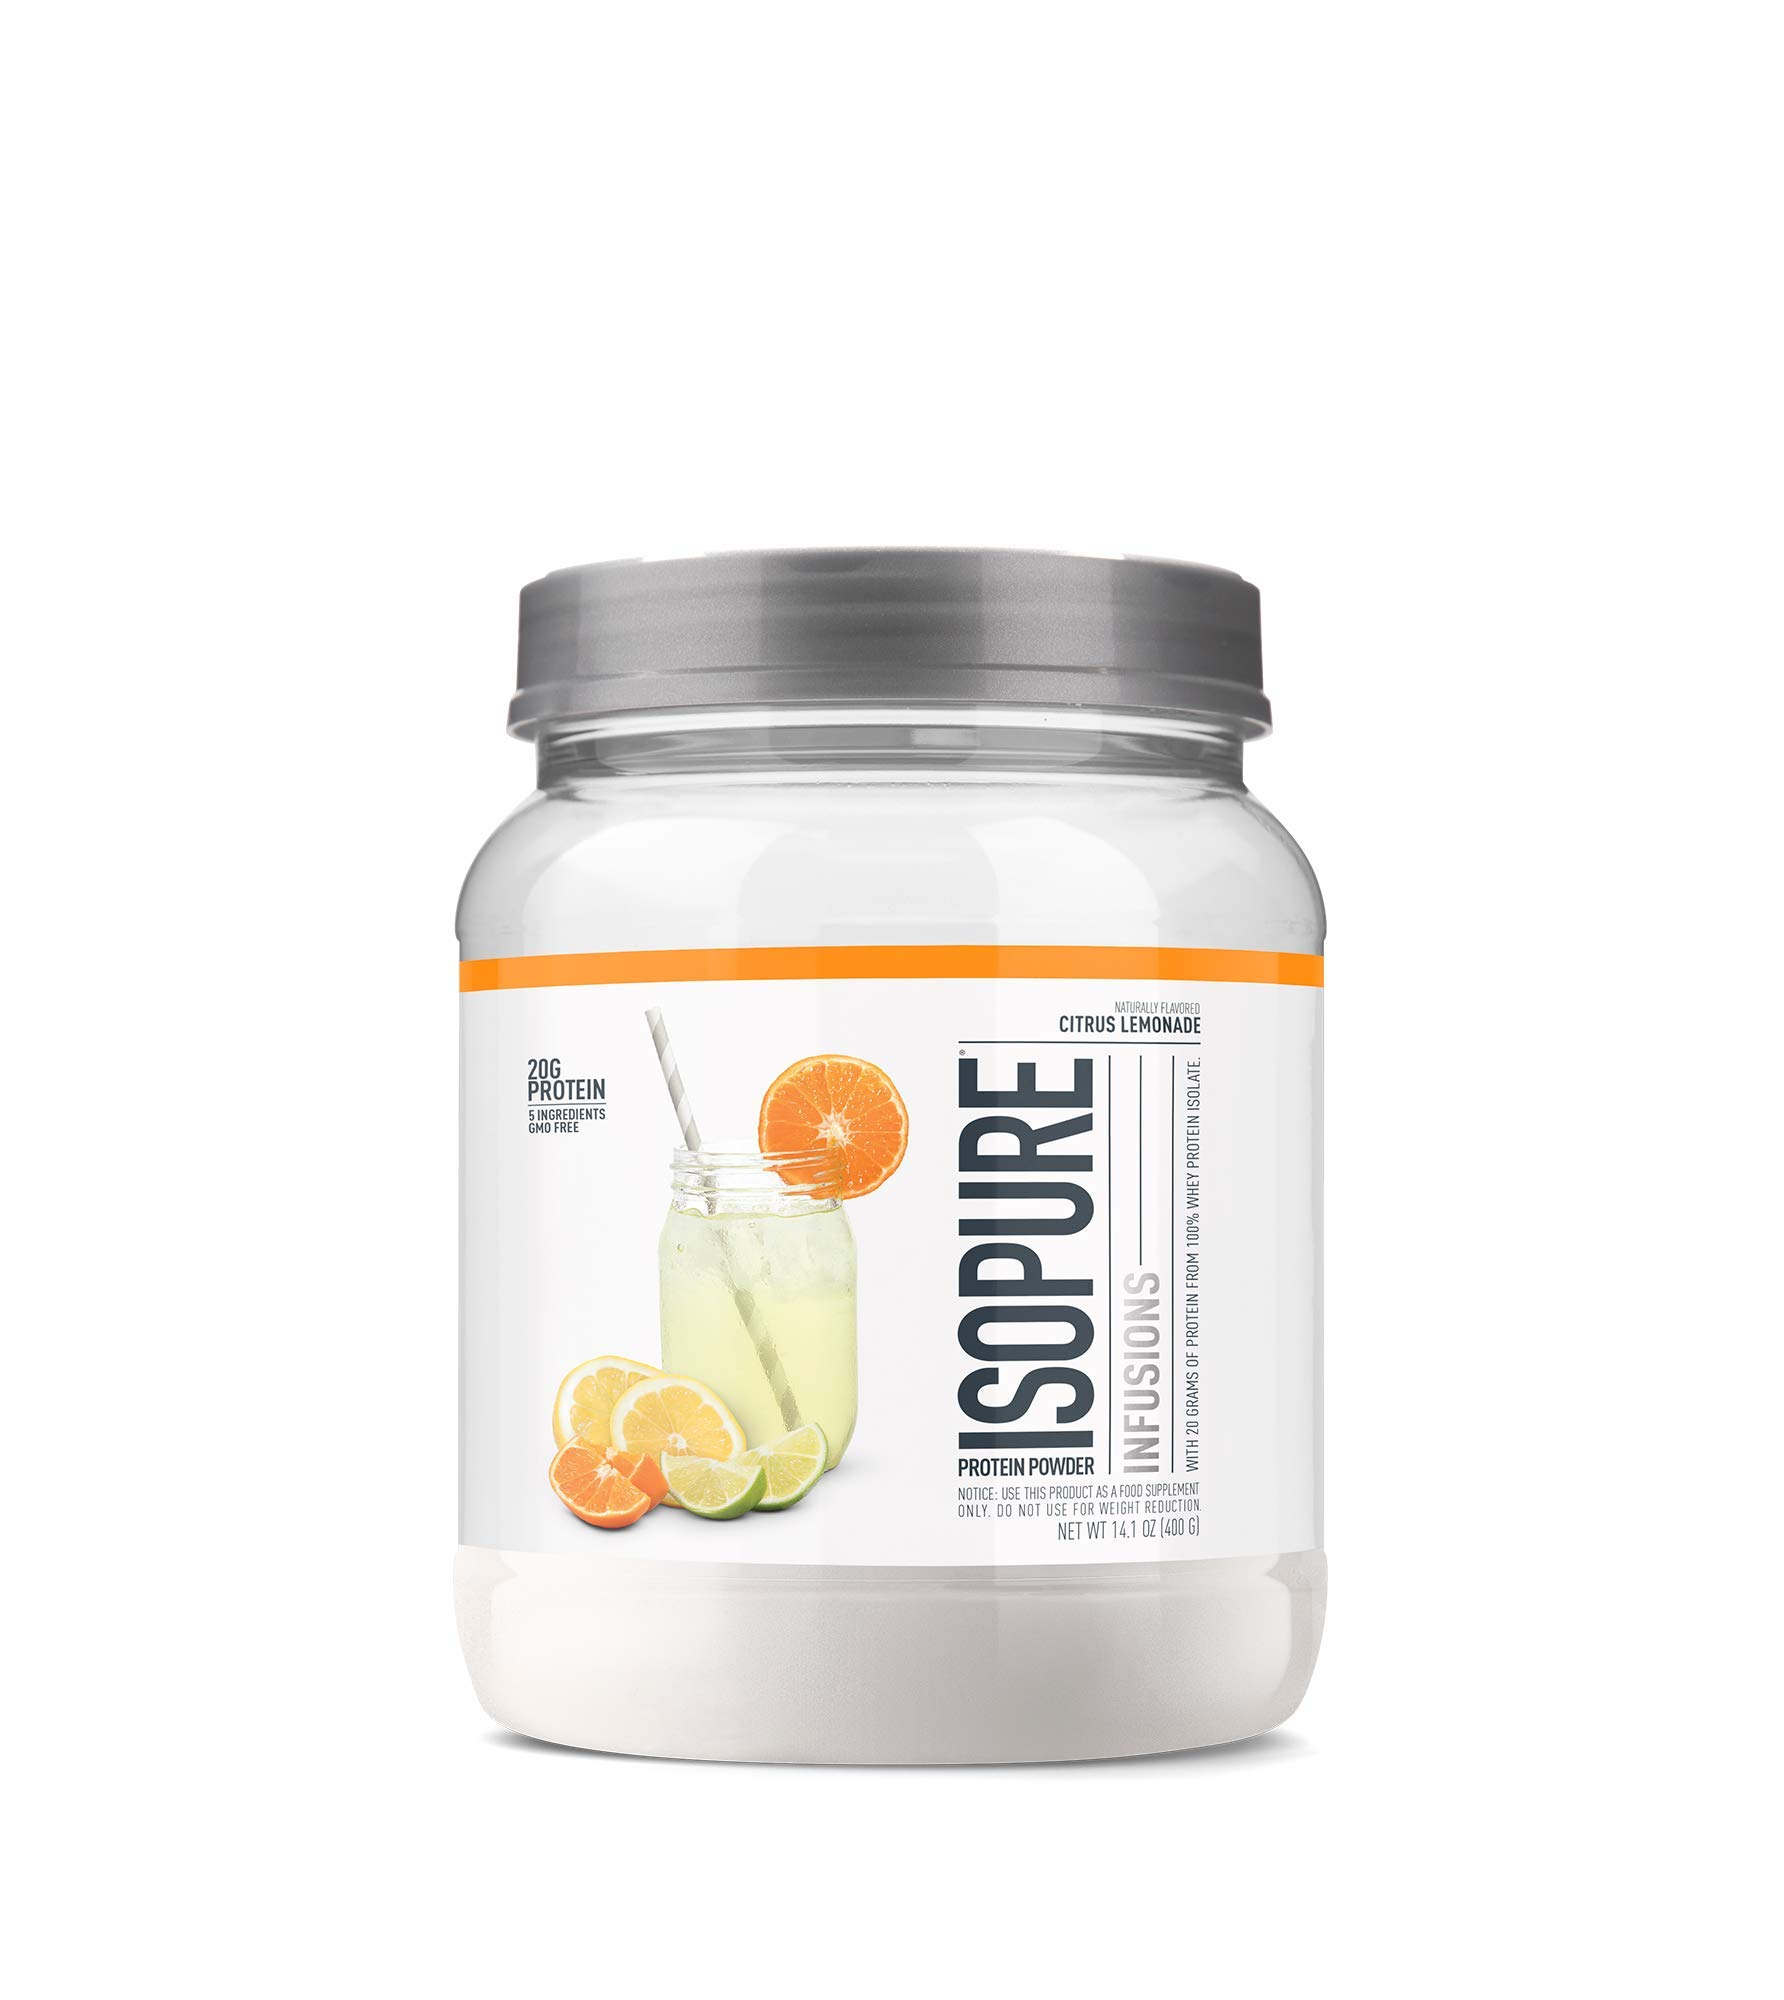 ISOPURE INFUSIONS, Refreshingly Light Fruit Flavored Whey Protein Isolate Powder, ''Shake Vigorously & Infuses in a Minute'', Citrus Lemonade, 16 Servings by Isopure (Image #1)